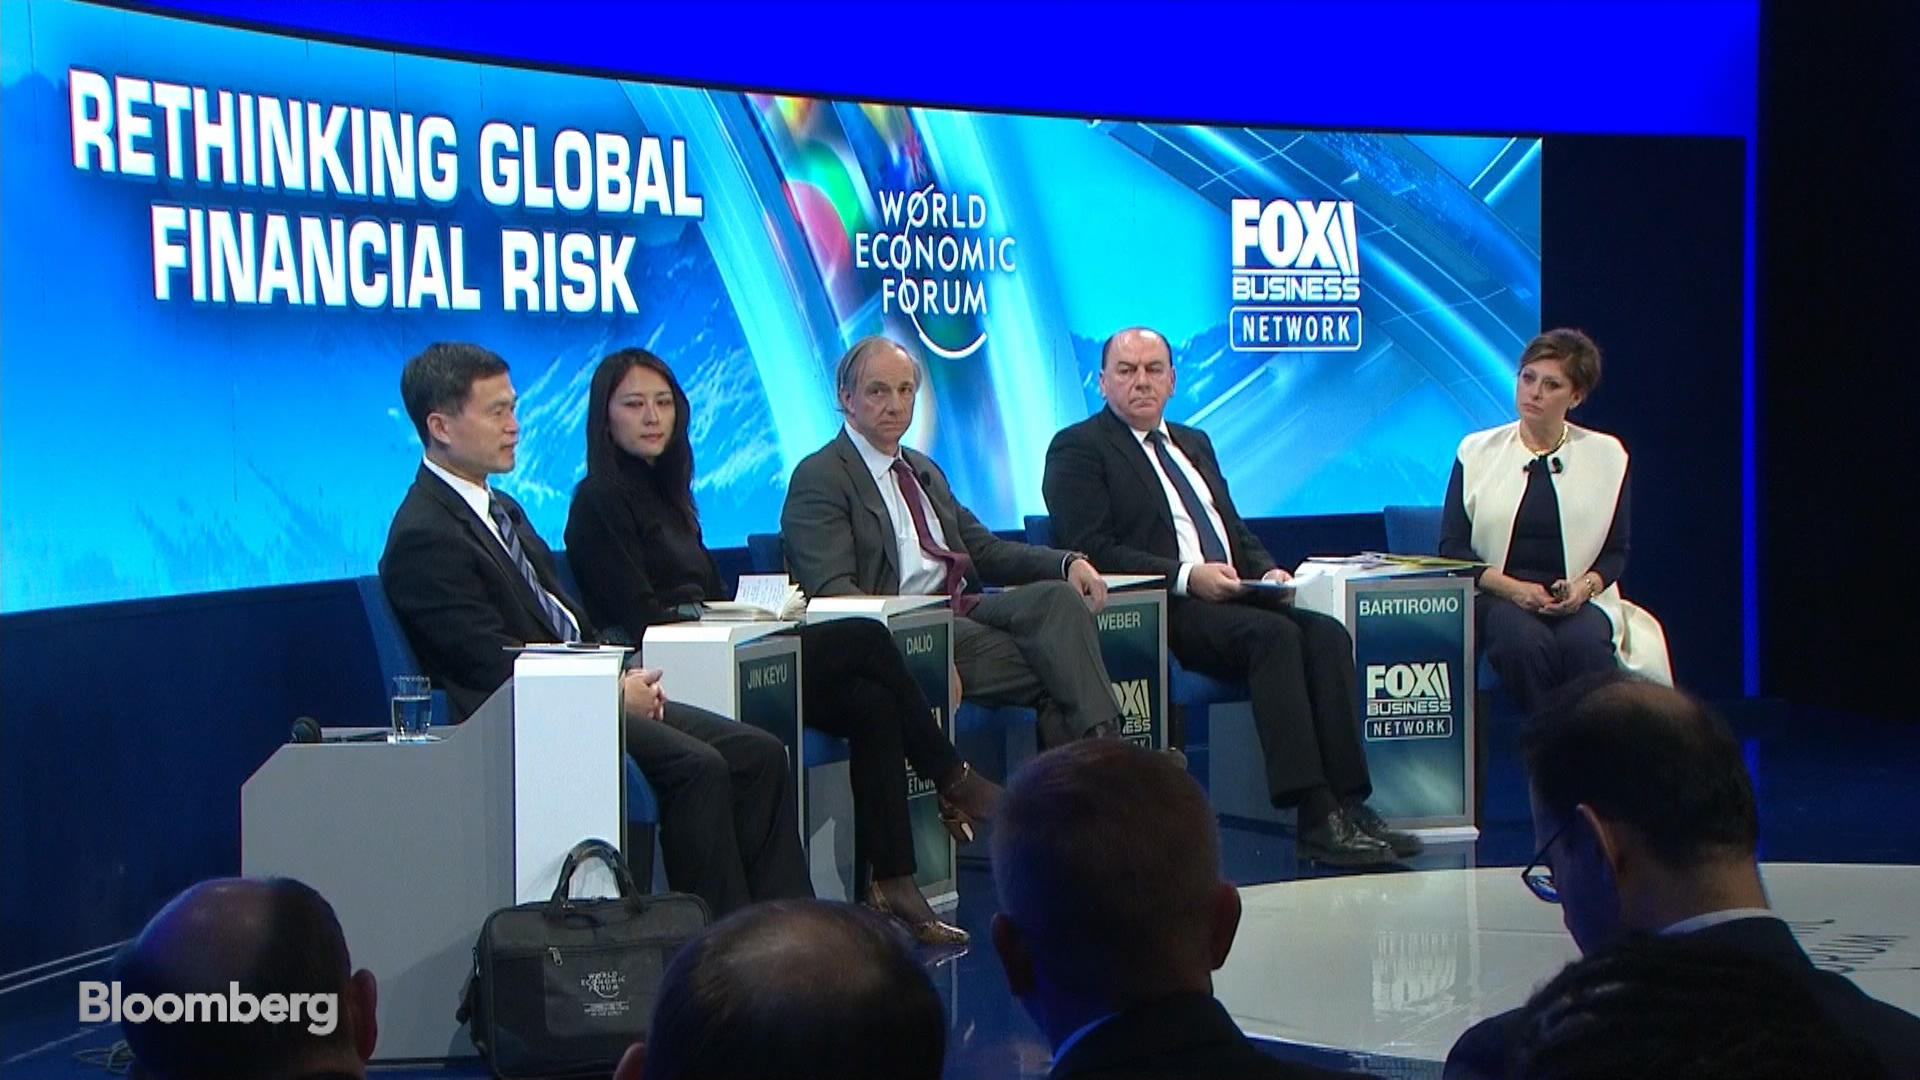 Dalio, Weber on Rethinking Global Financial Risk: Davos Panel